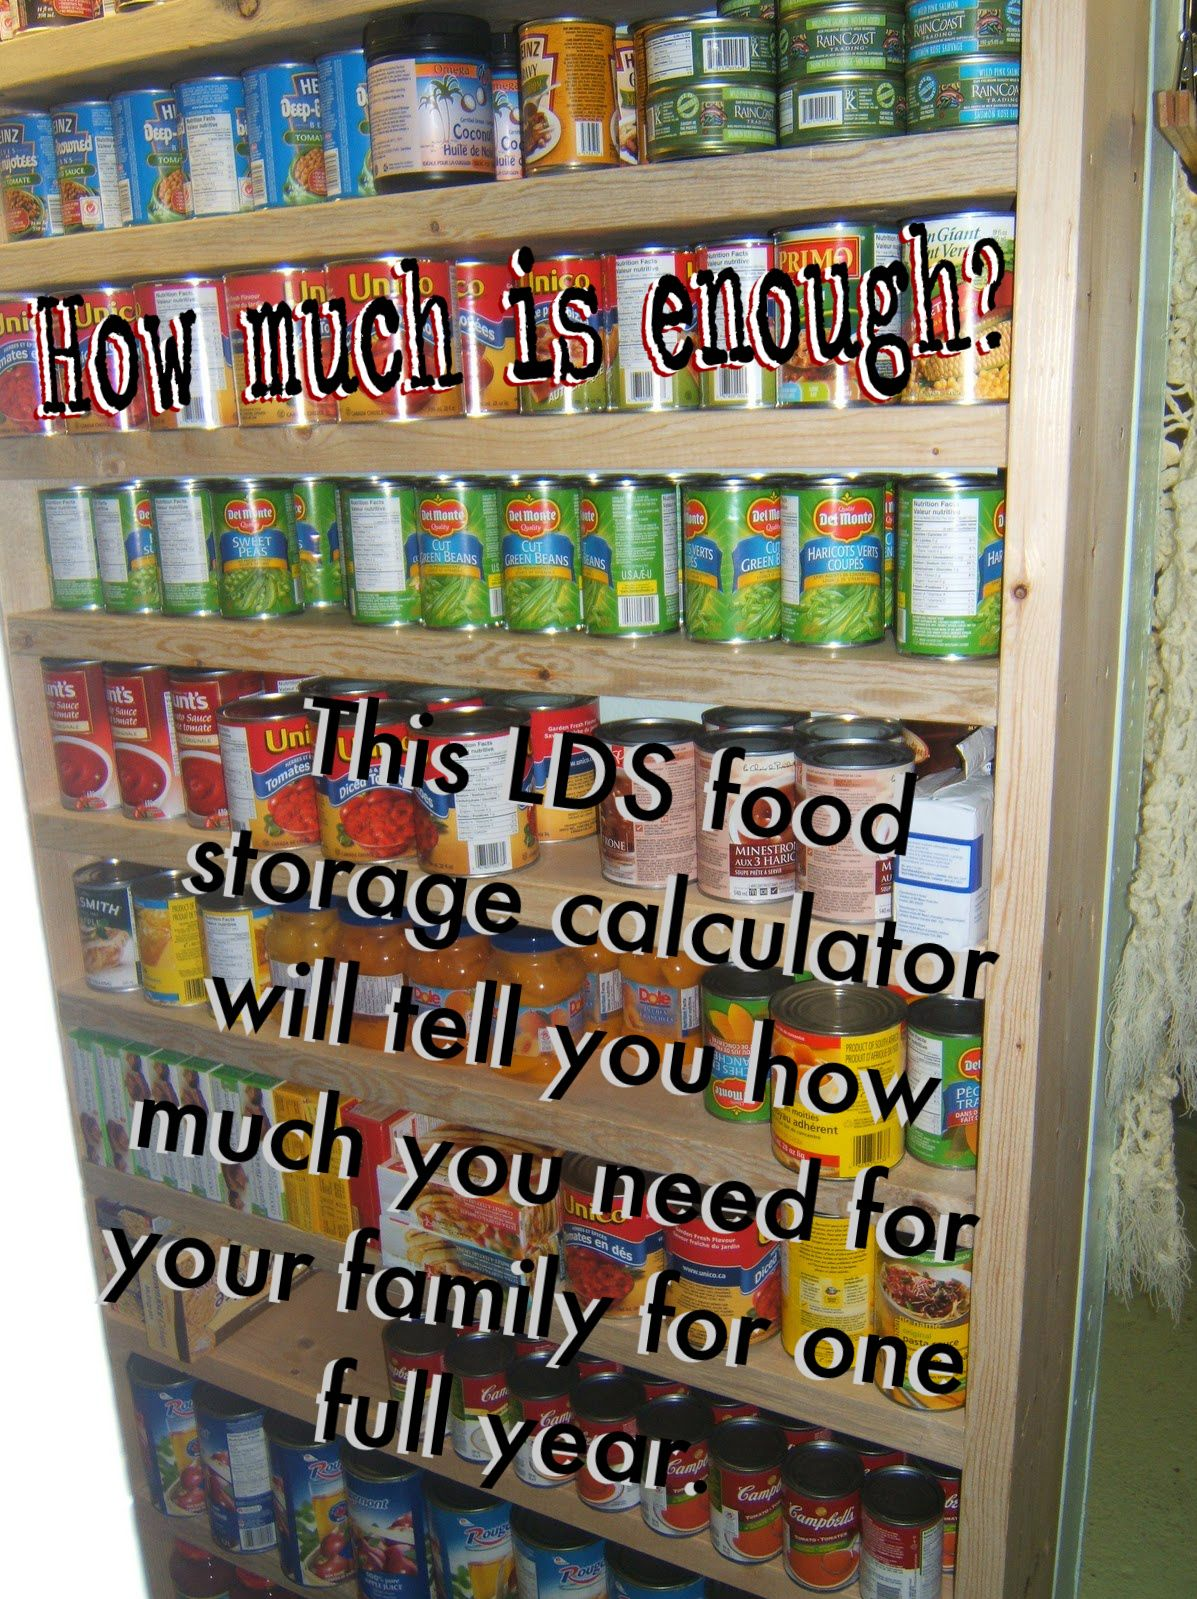 Mormon Food Storage Magnificent Online Food Storage Calculating Advice From The Lds Church Decorating Design